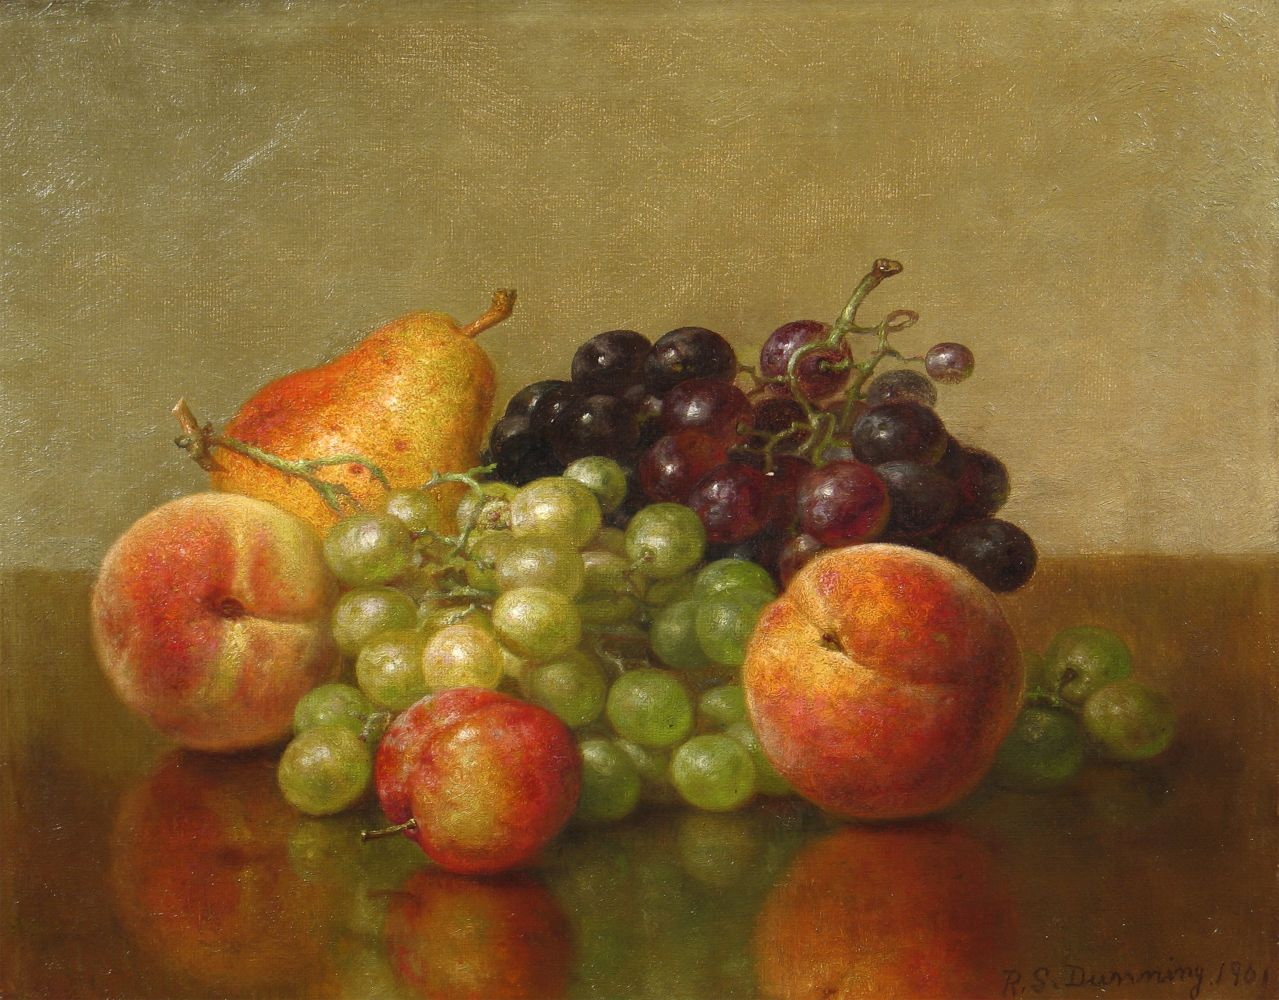 Robert Spear Dunning (1829–1905), An Arrangement of Fruit, 1901, oil on canvas, 11 x 14 in., signed and dated lower right: R. S. Dunning 1901, inscribed on verso: R. S. Dunning / 1901